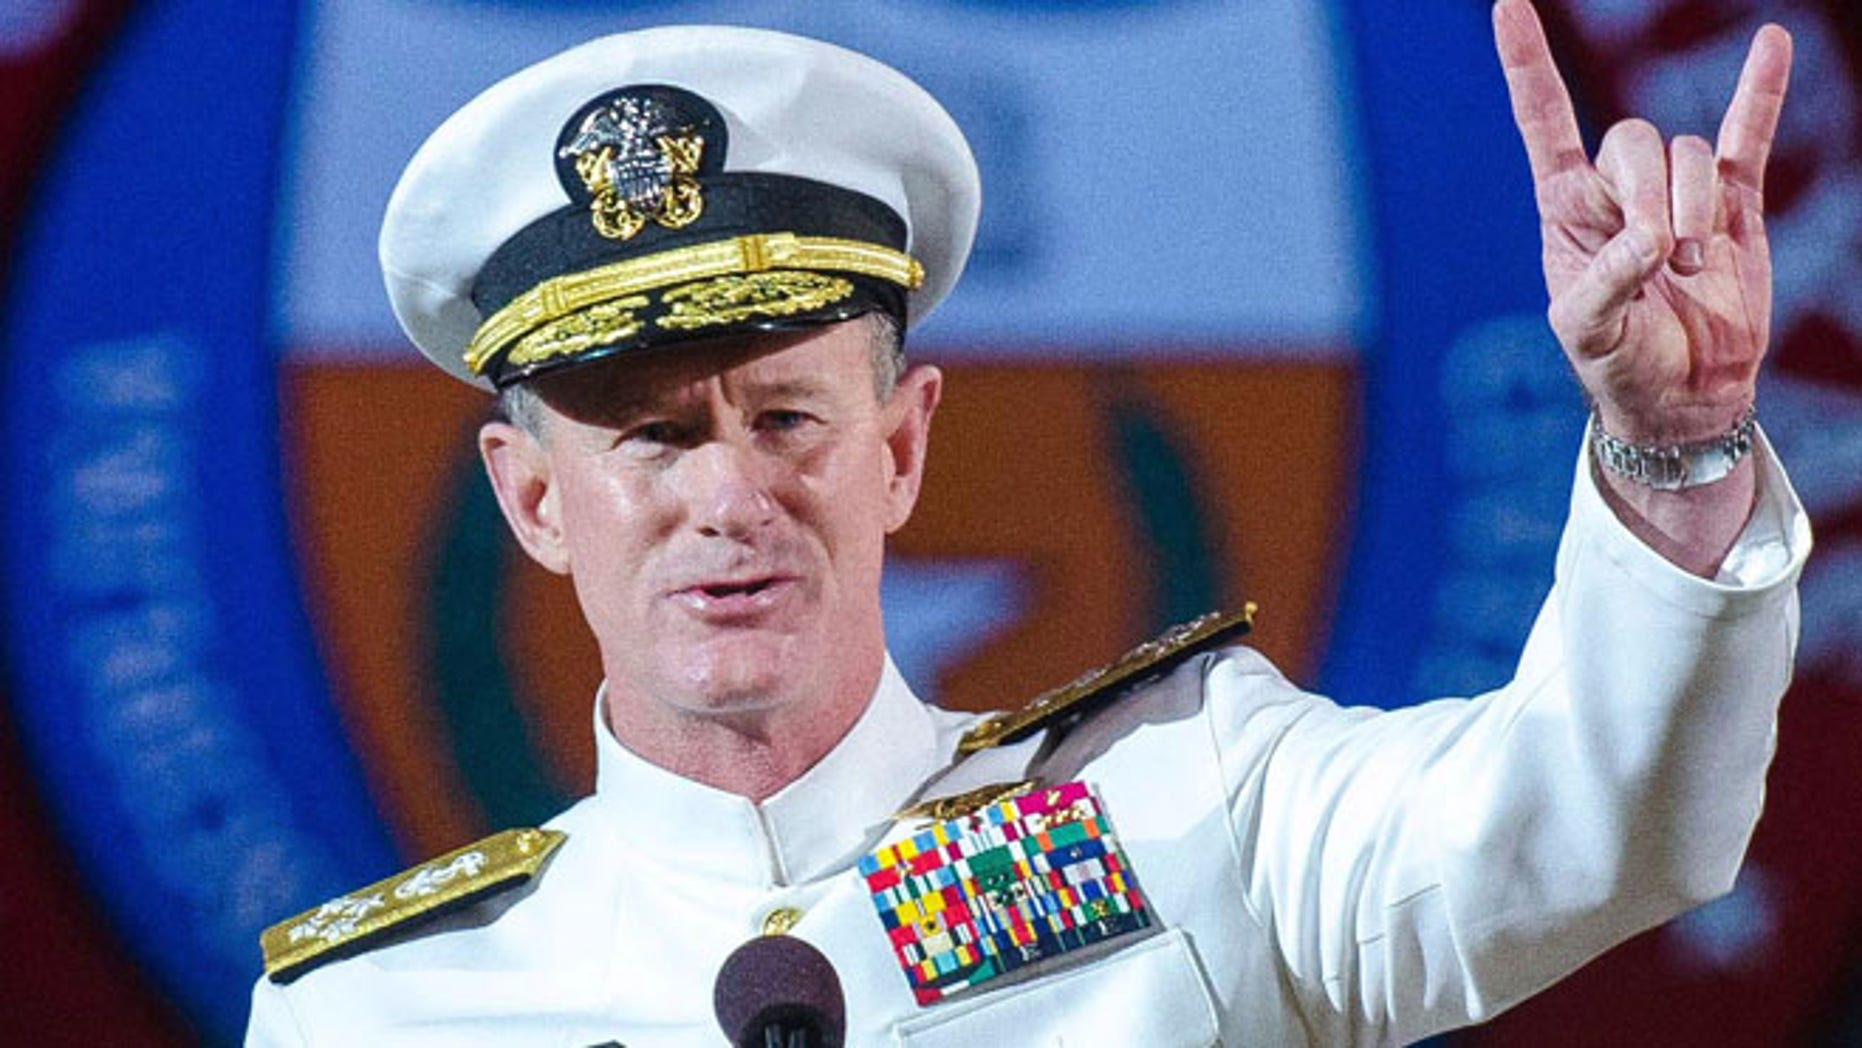 May 17, 2014: Naval Adm. William H. McRaven, an alumnus, does the Longhorns' Hook 'em Horns hand signal during his commencement keynote address at the University of Texas in Austin.